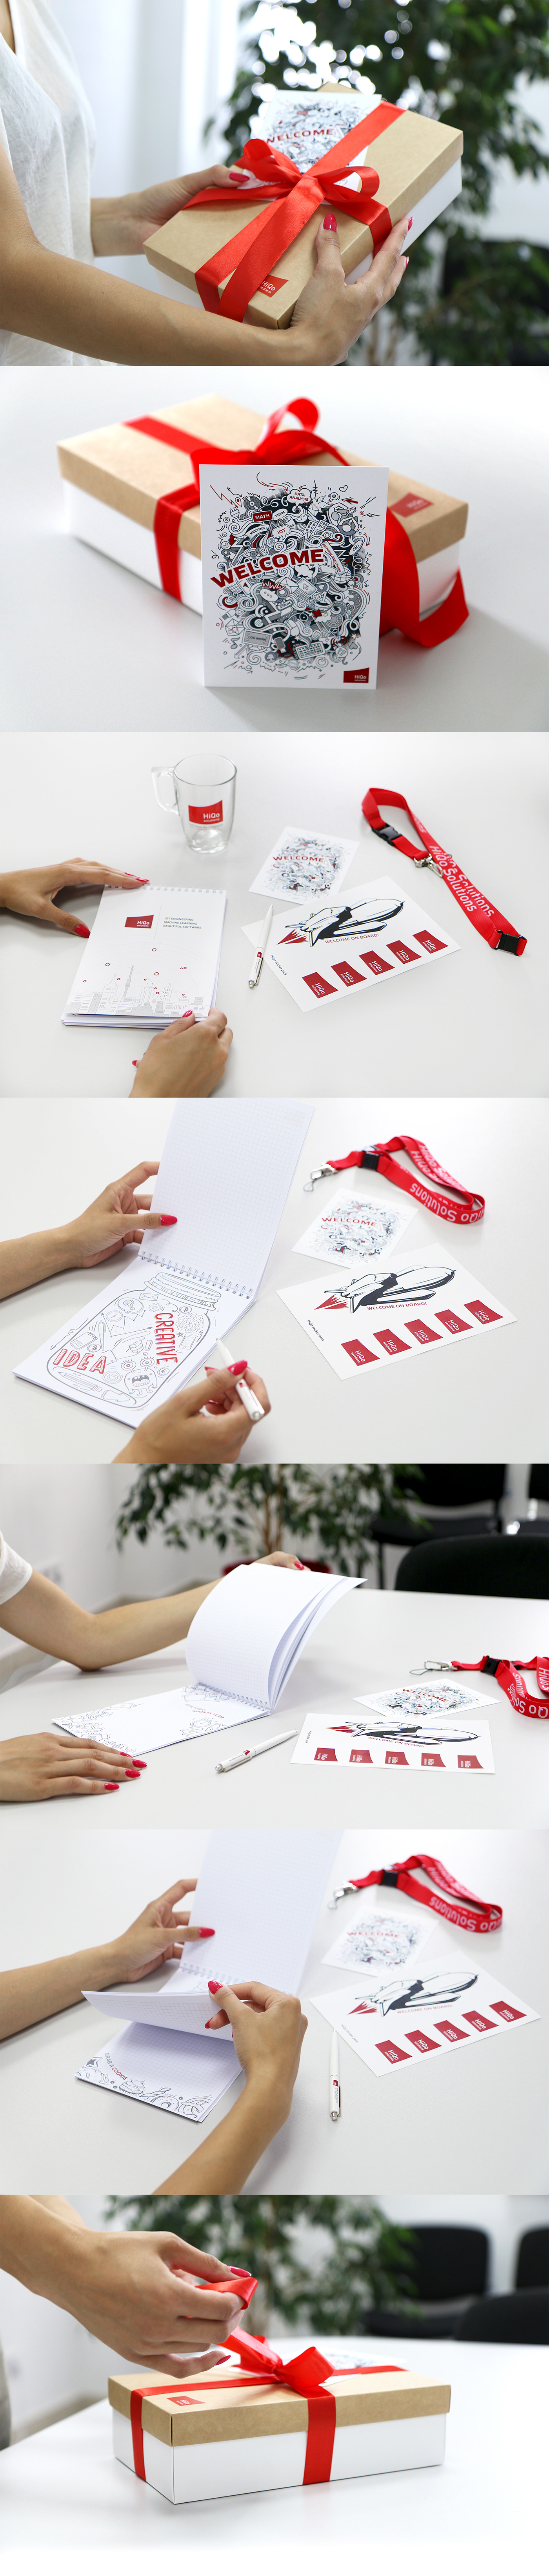 card notebook box gift pen cup welcome hiqo solutions IT